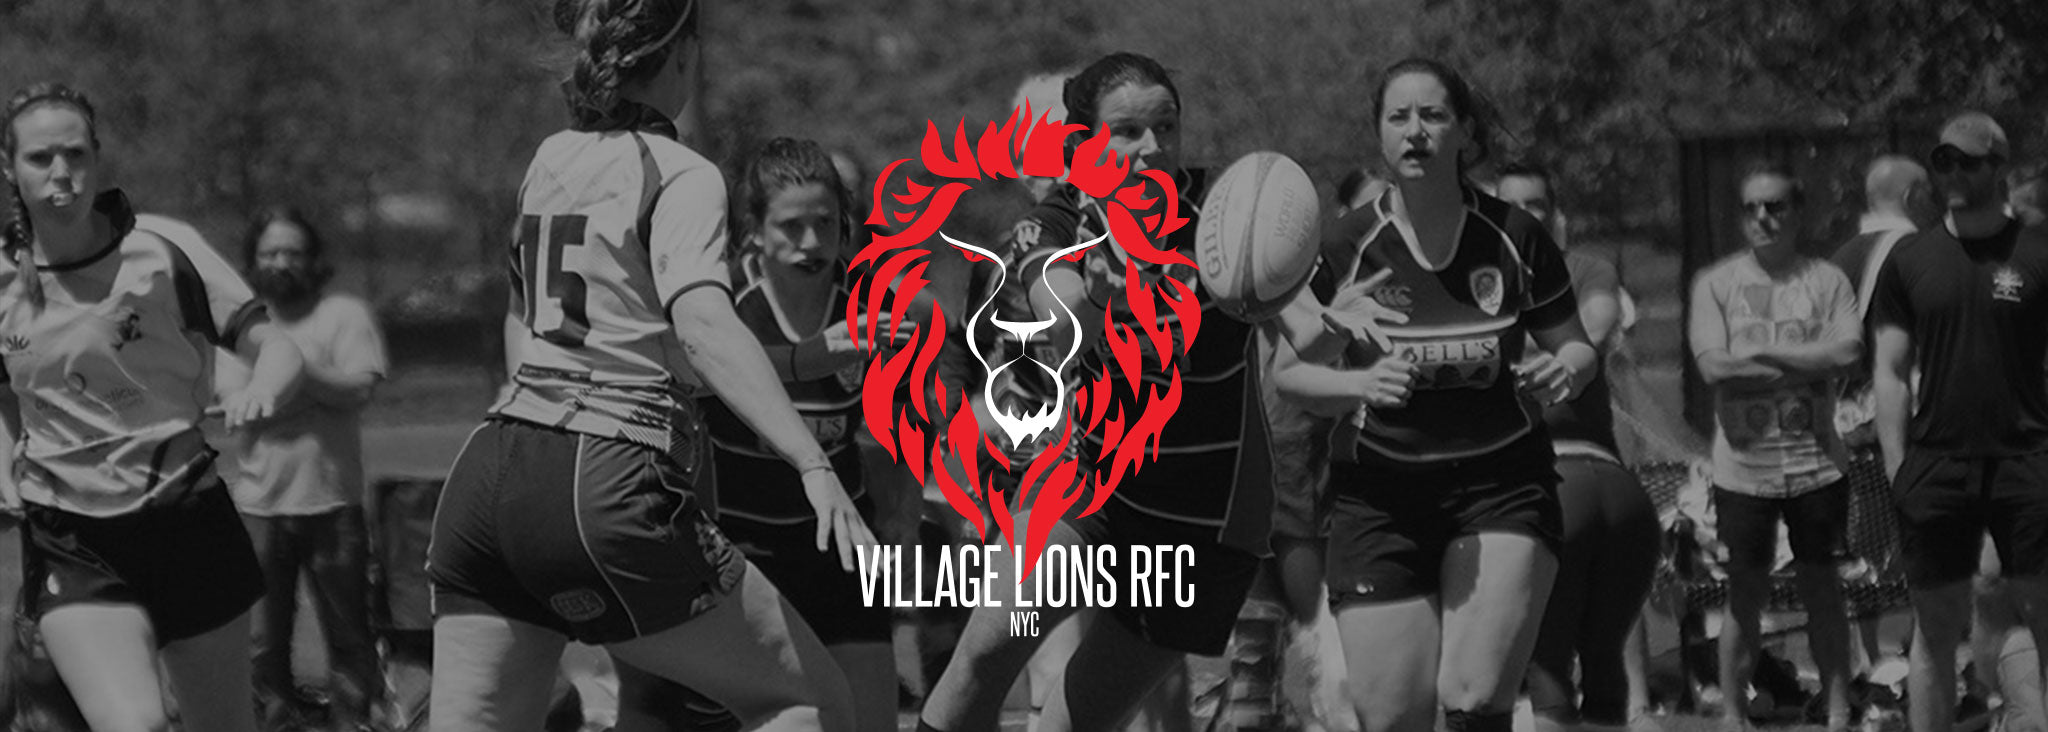 Village Lions Rugby Club - NYC